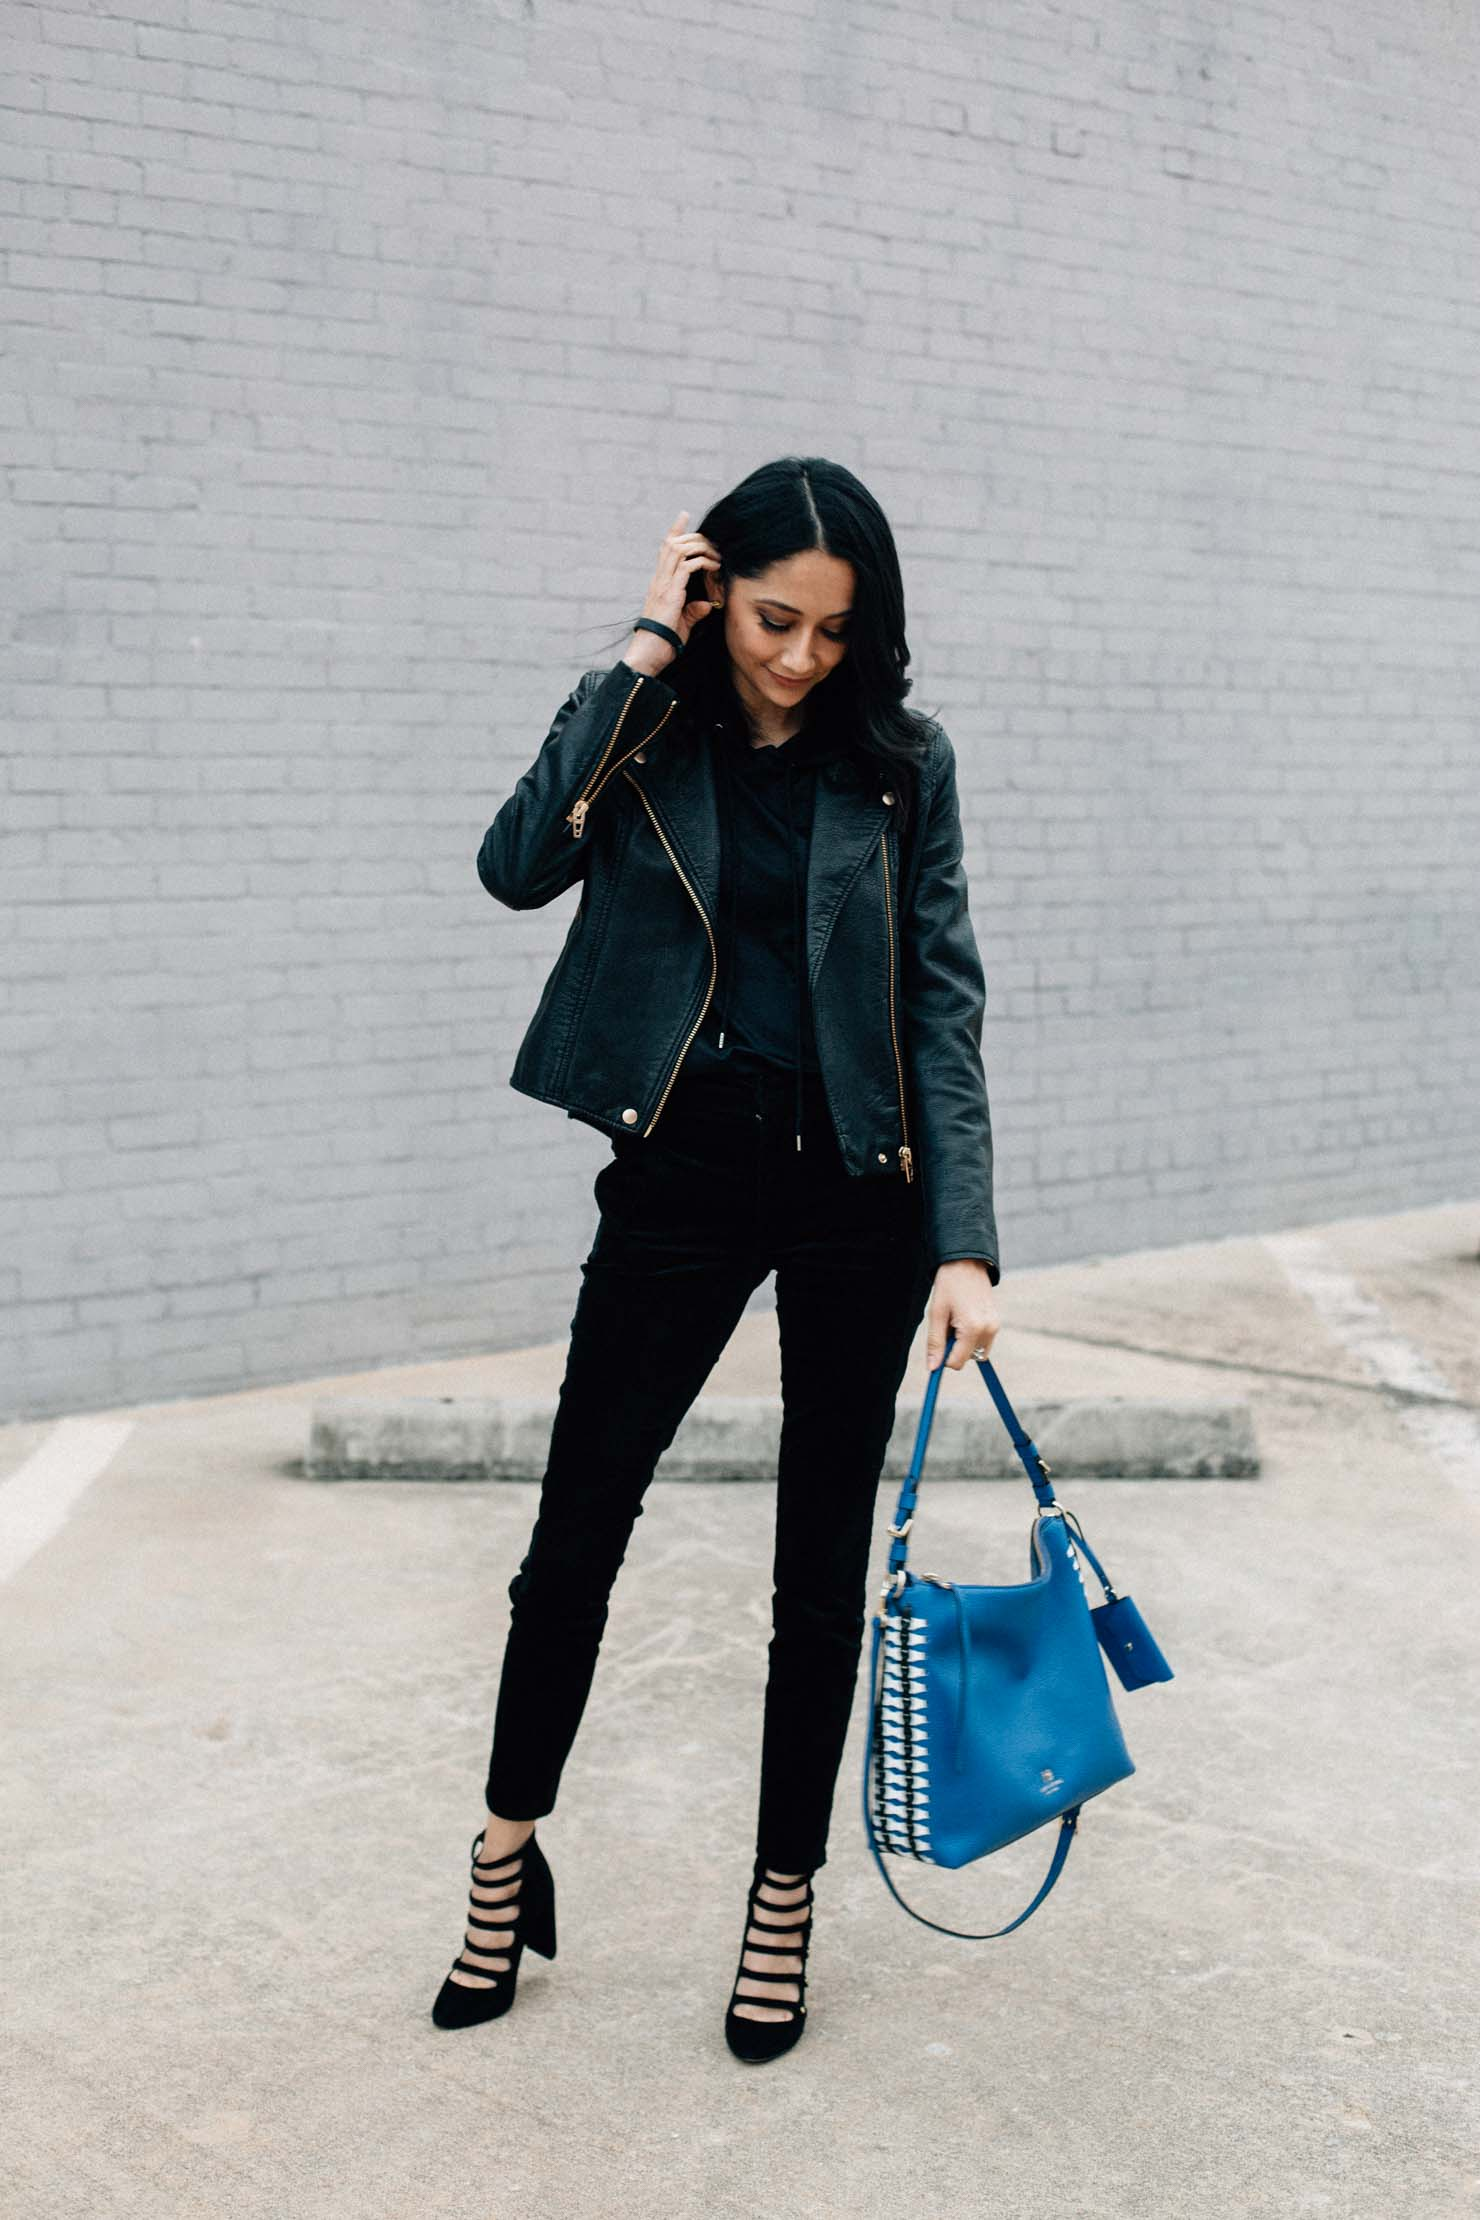 Lilly Beltran wearing a chic all black outfit with skinny velvet pants and faux leather moto jacket